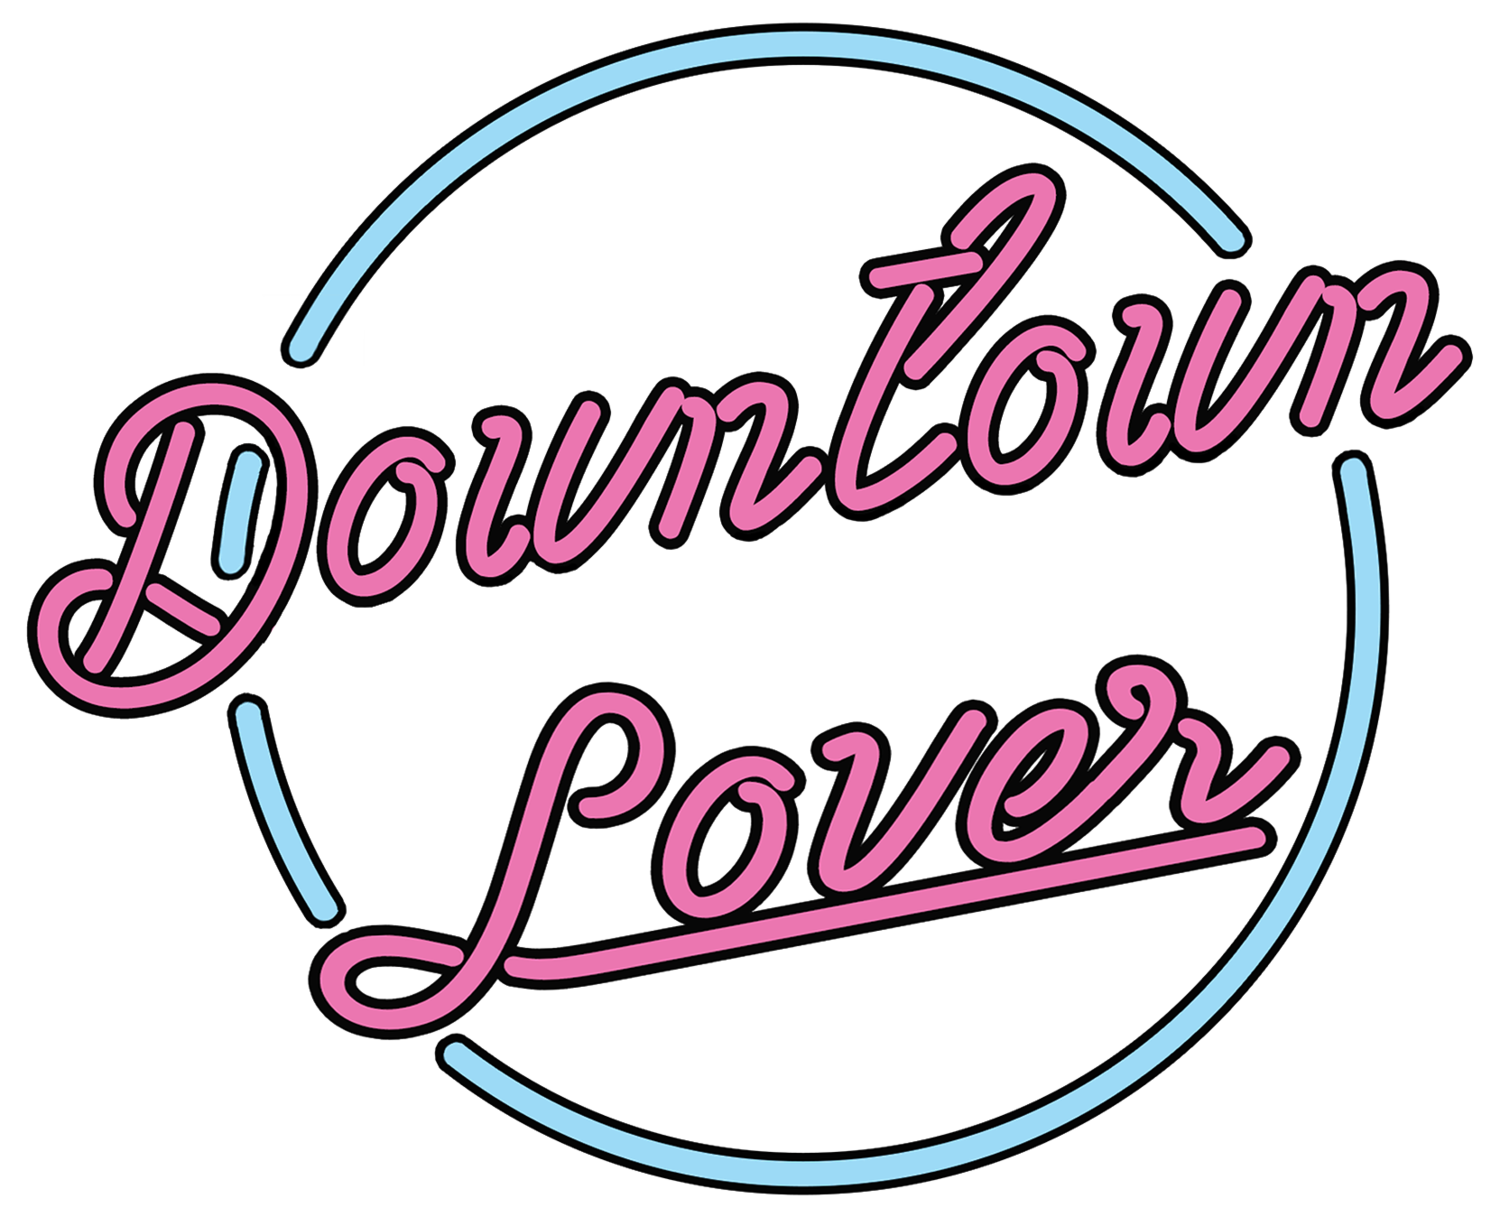 DOWNTOWN LOVER